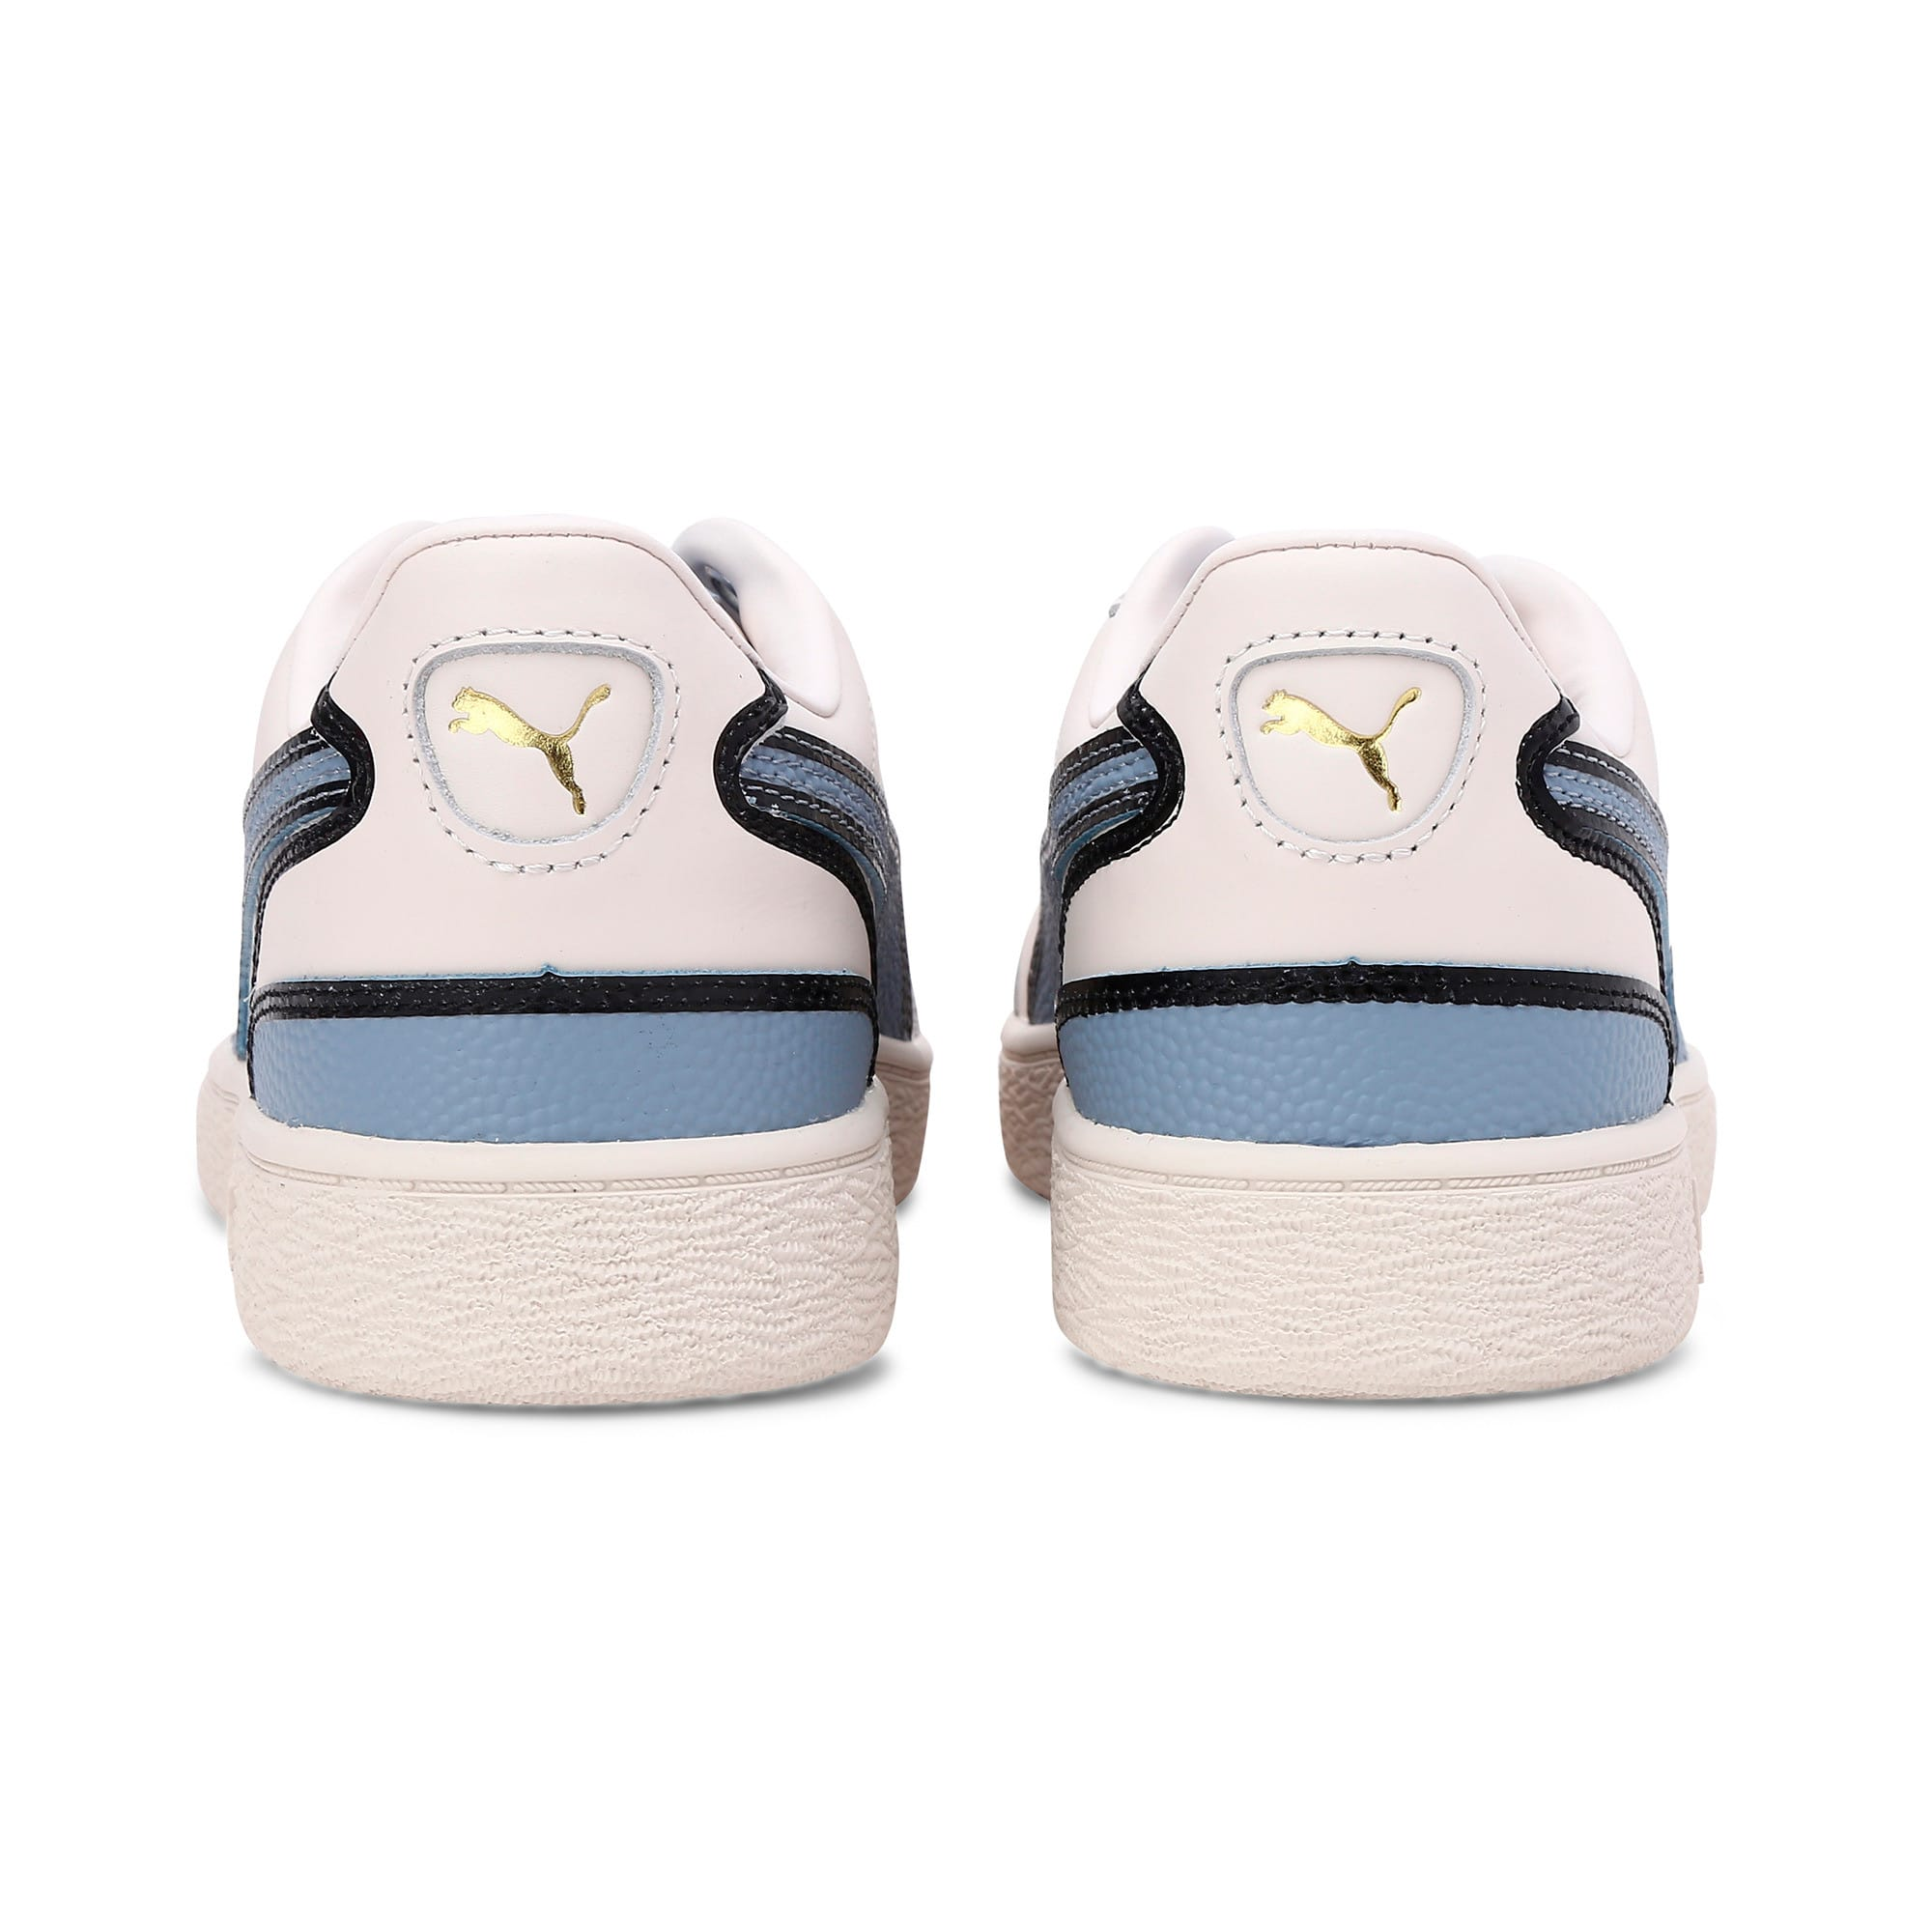 Thumbnail 5 of Ralph Sampson Lo Hoops Trainers, Pastel-Faded Denim-Pastel, medium-IND